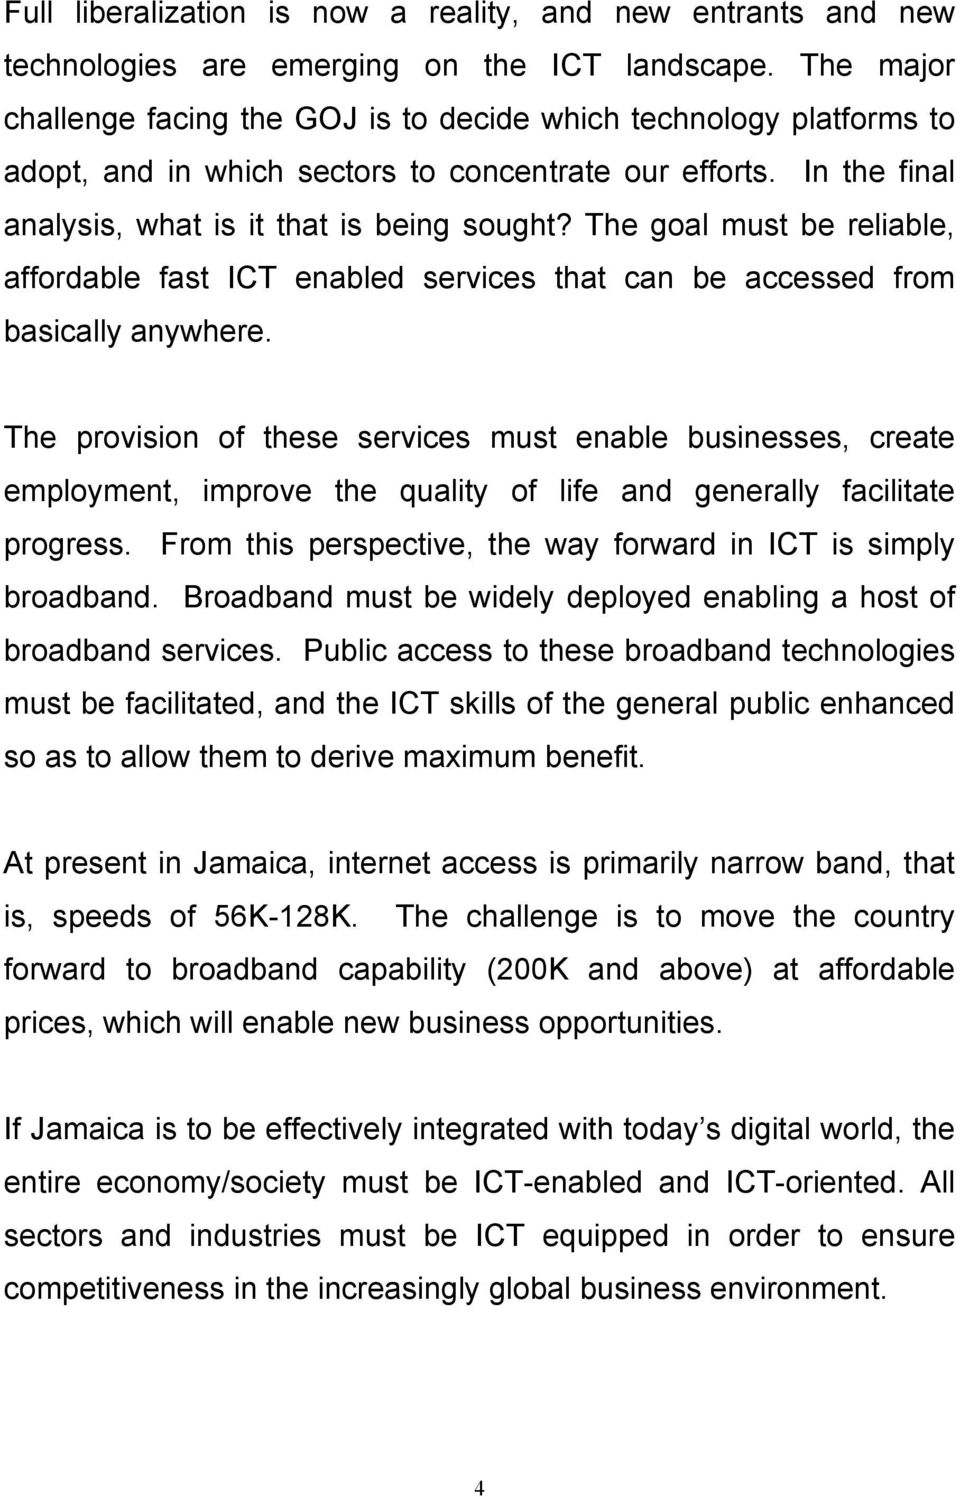 The goal must be reliable, affordable fast ICT enabled services that can be accessed from basically anywhere.